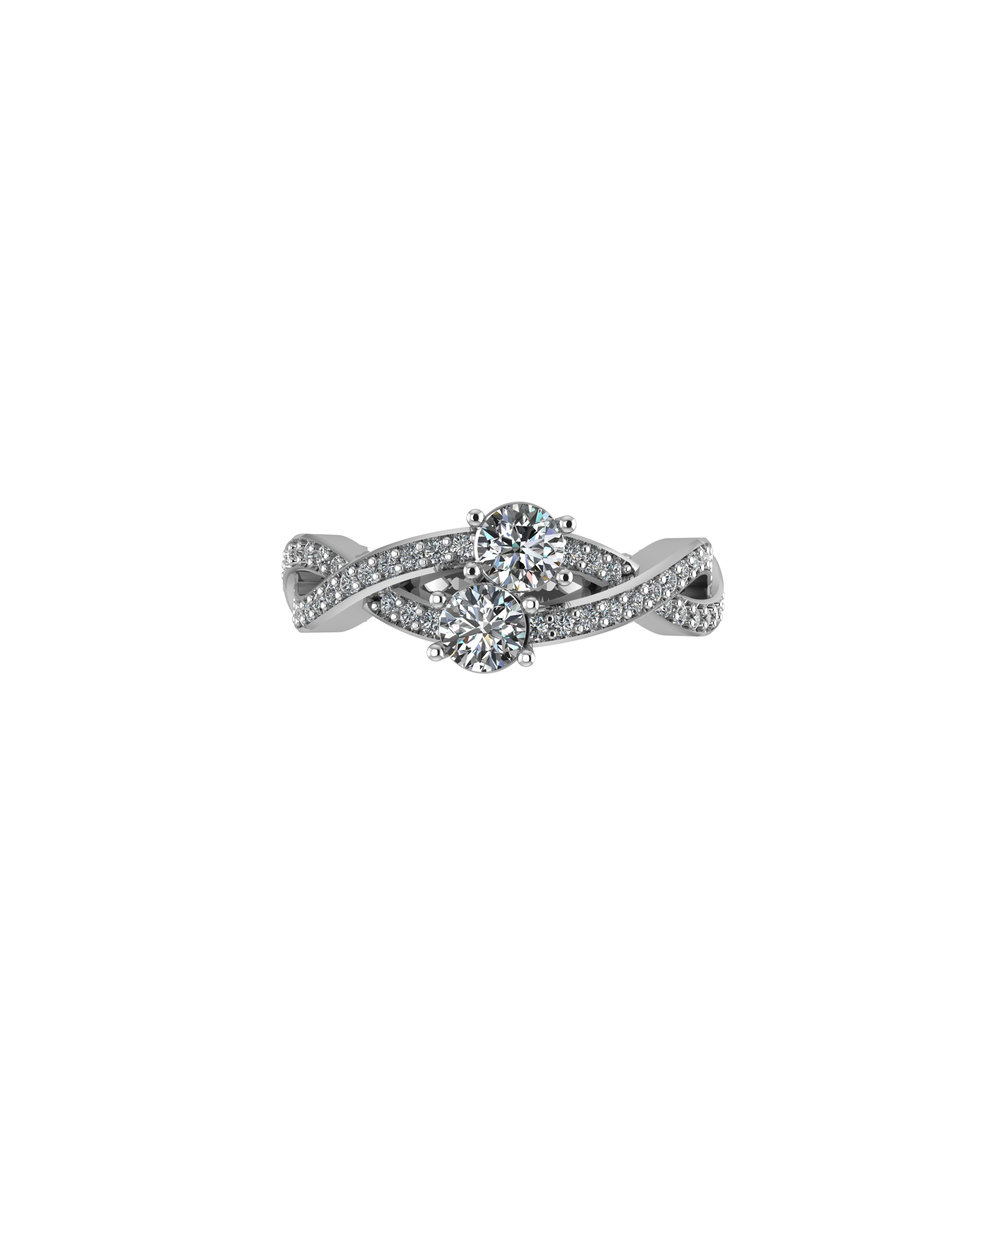 designer diamond bridal jewelry--34.jpg